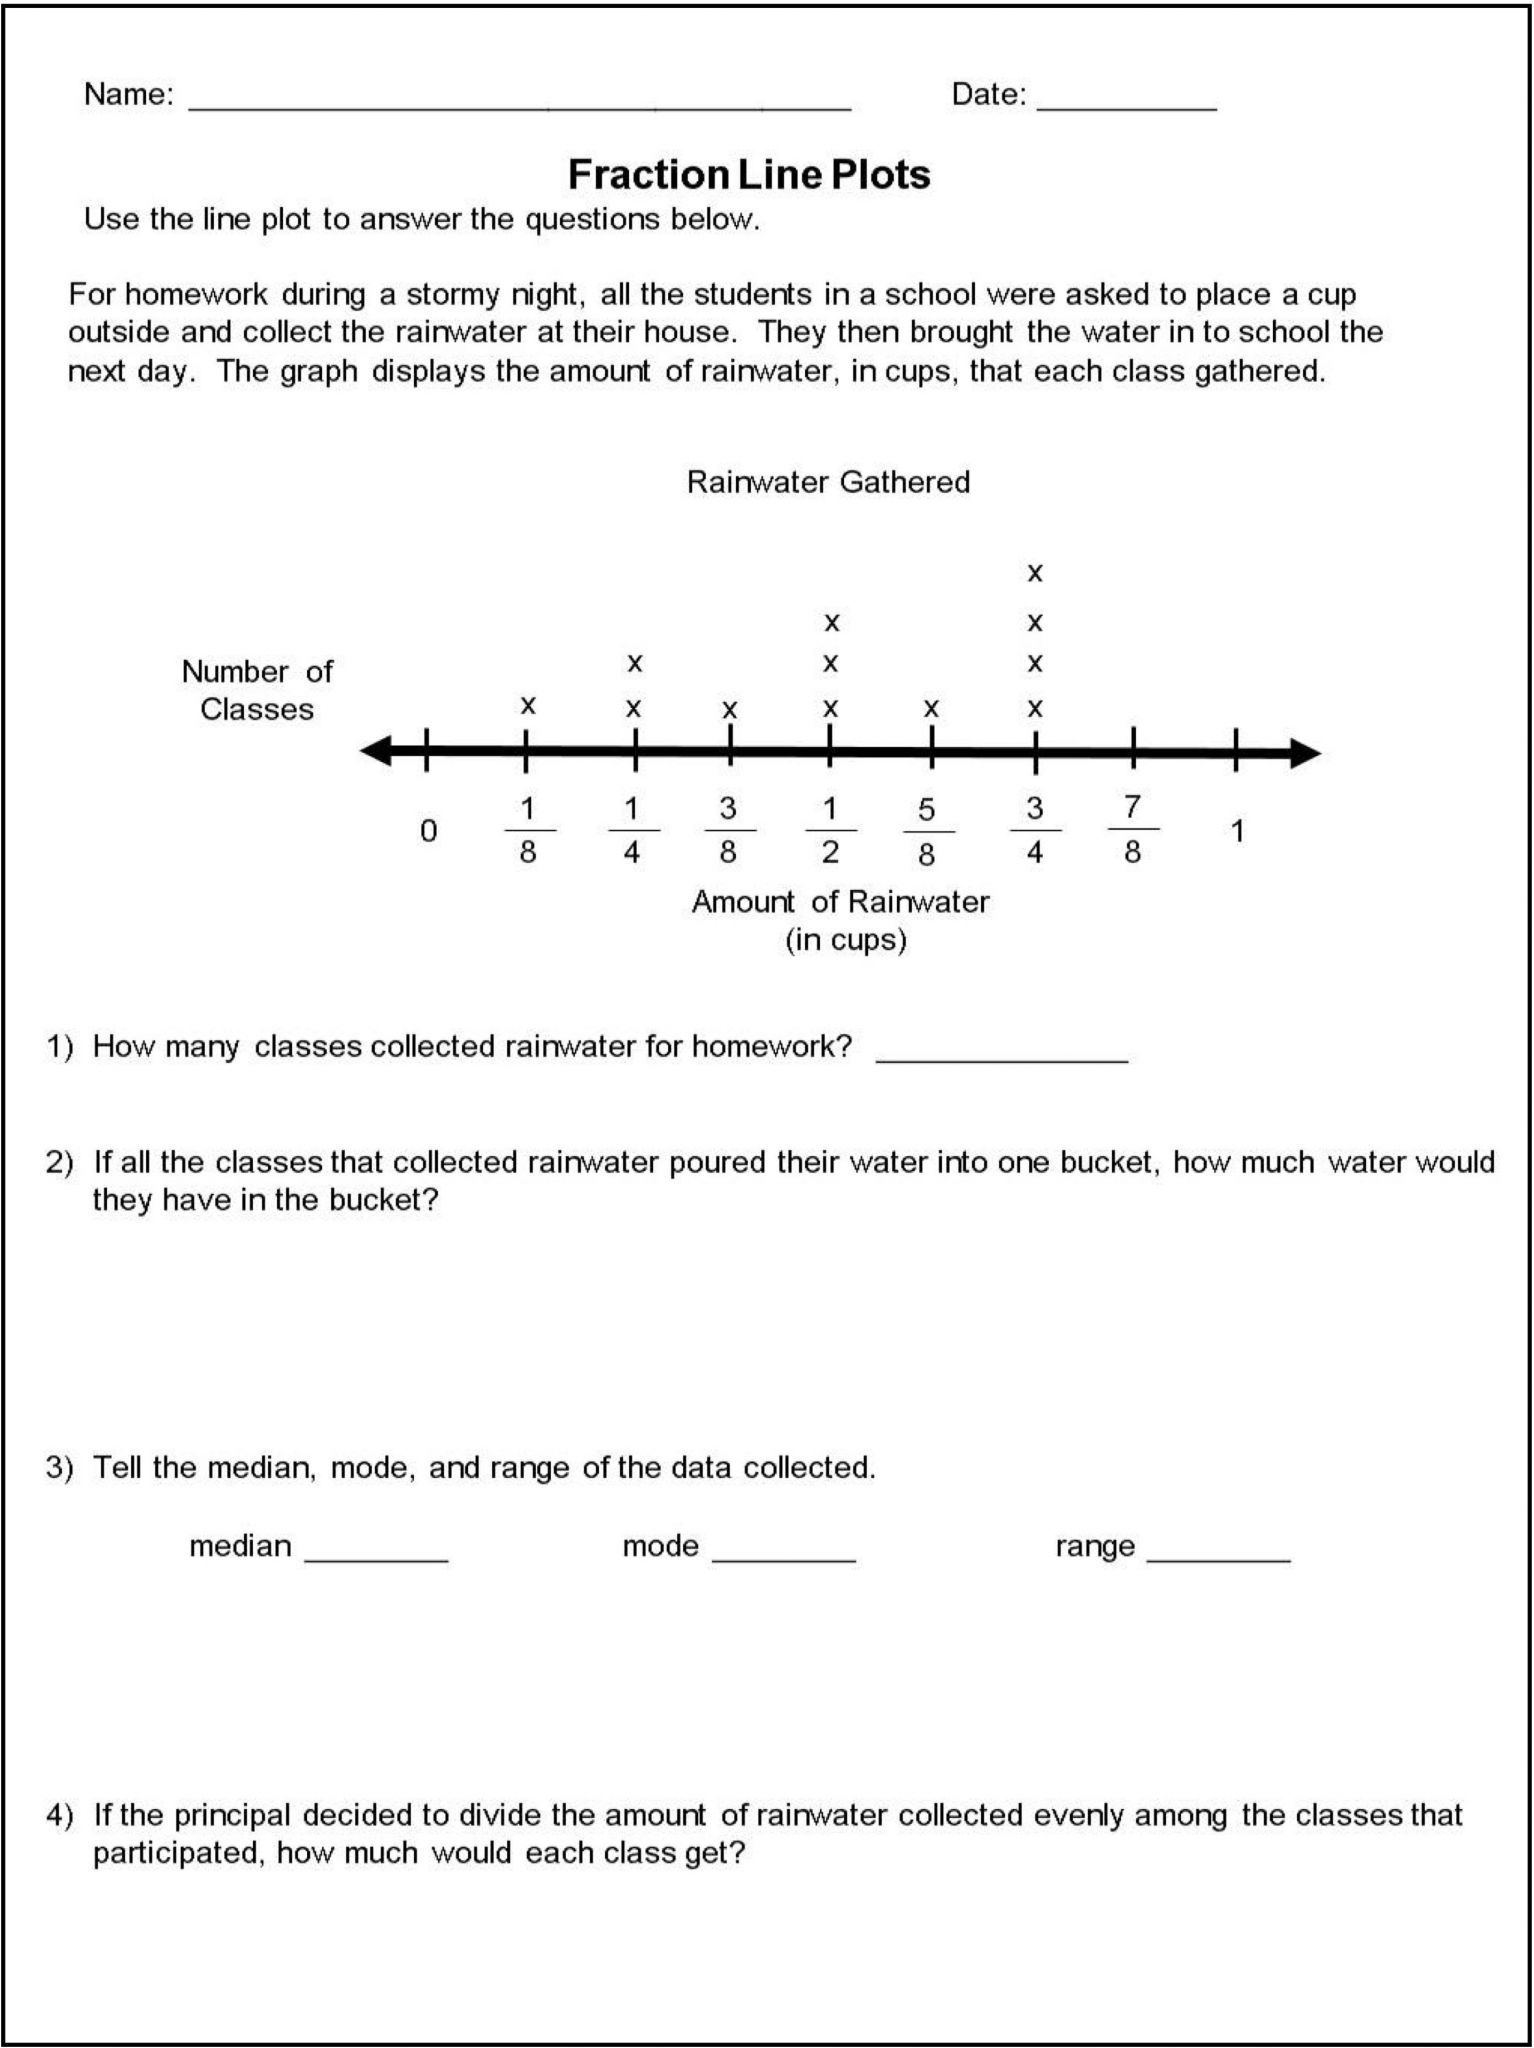 Eureka Math Worksheets 3rd Grade